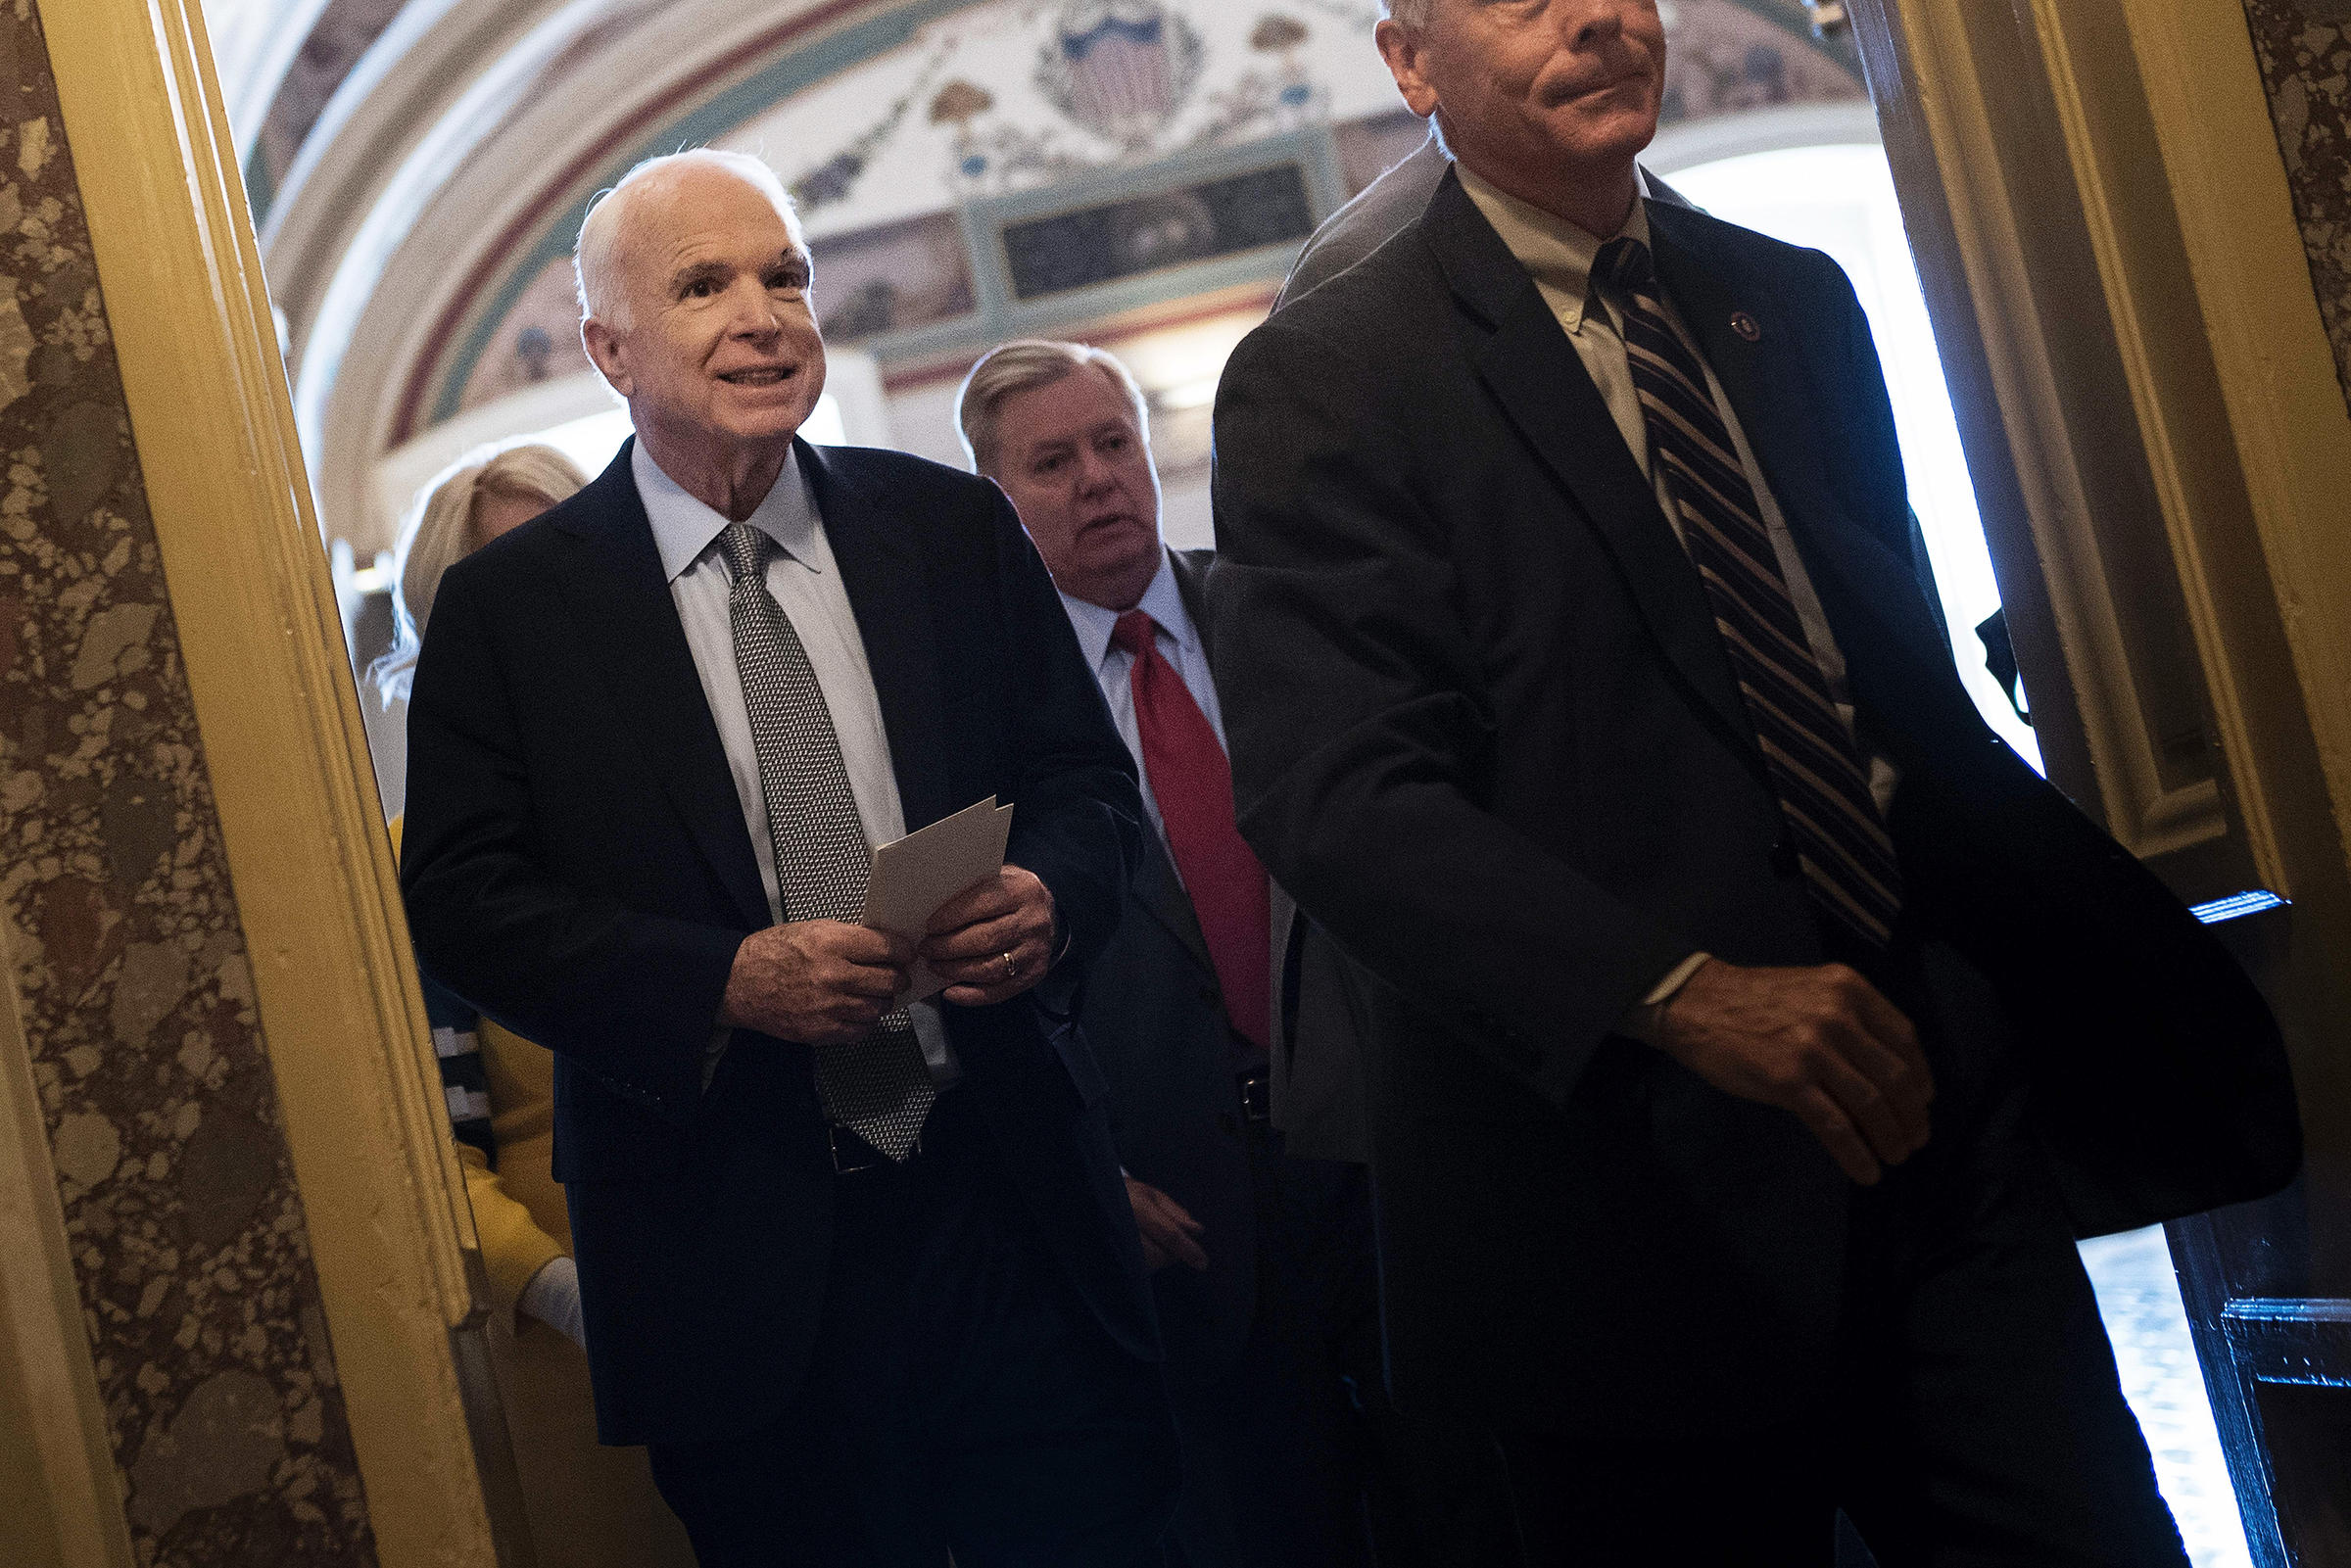 After a dramatic vote, what's next in the Senate health care debate?